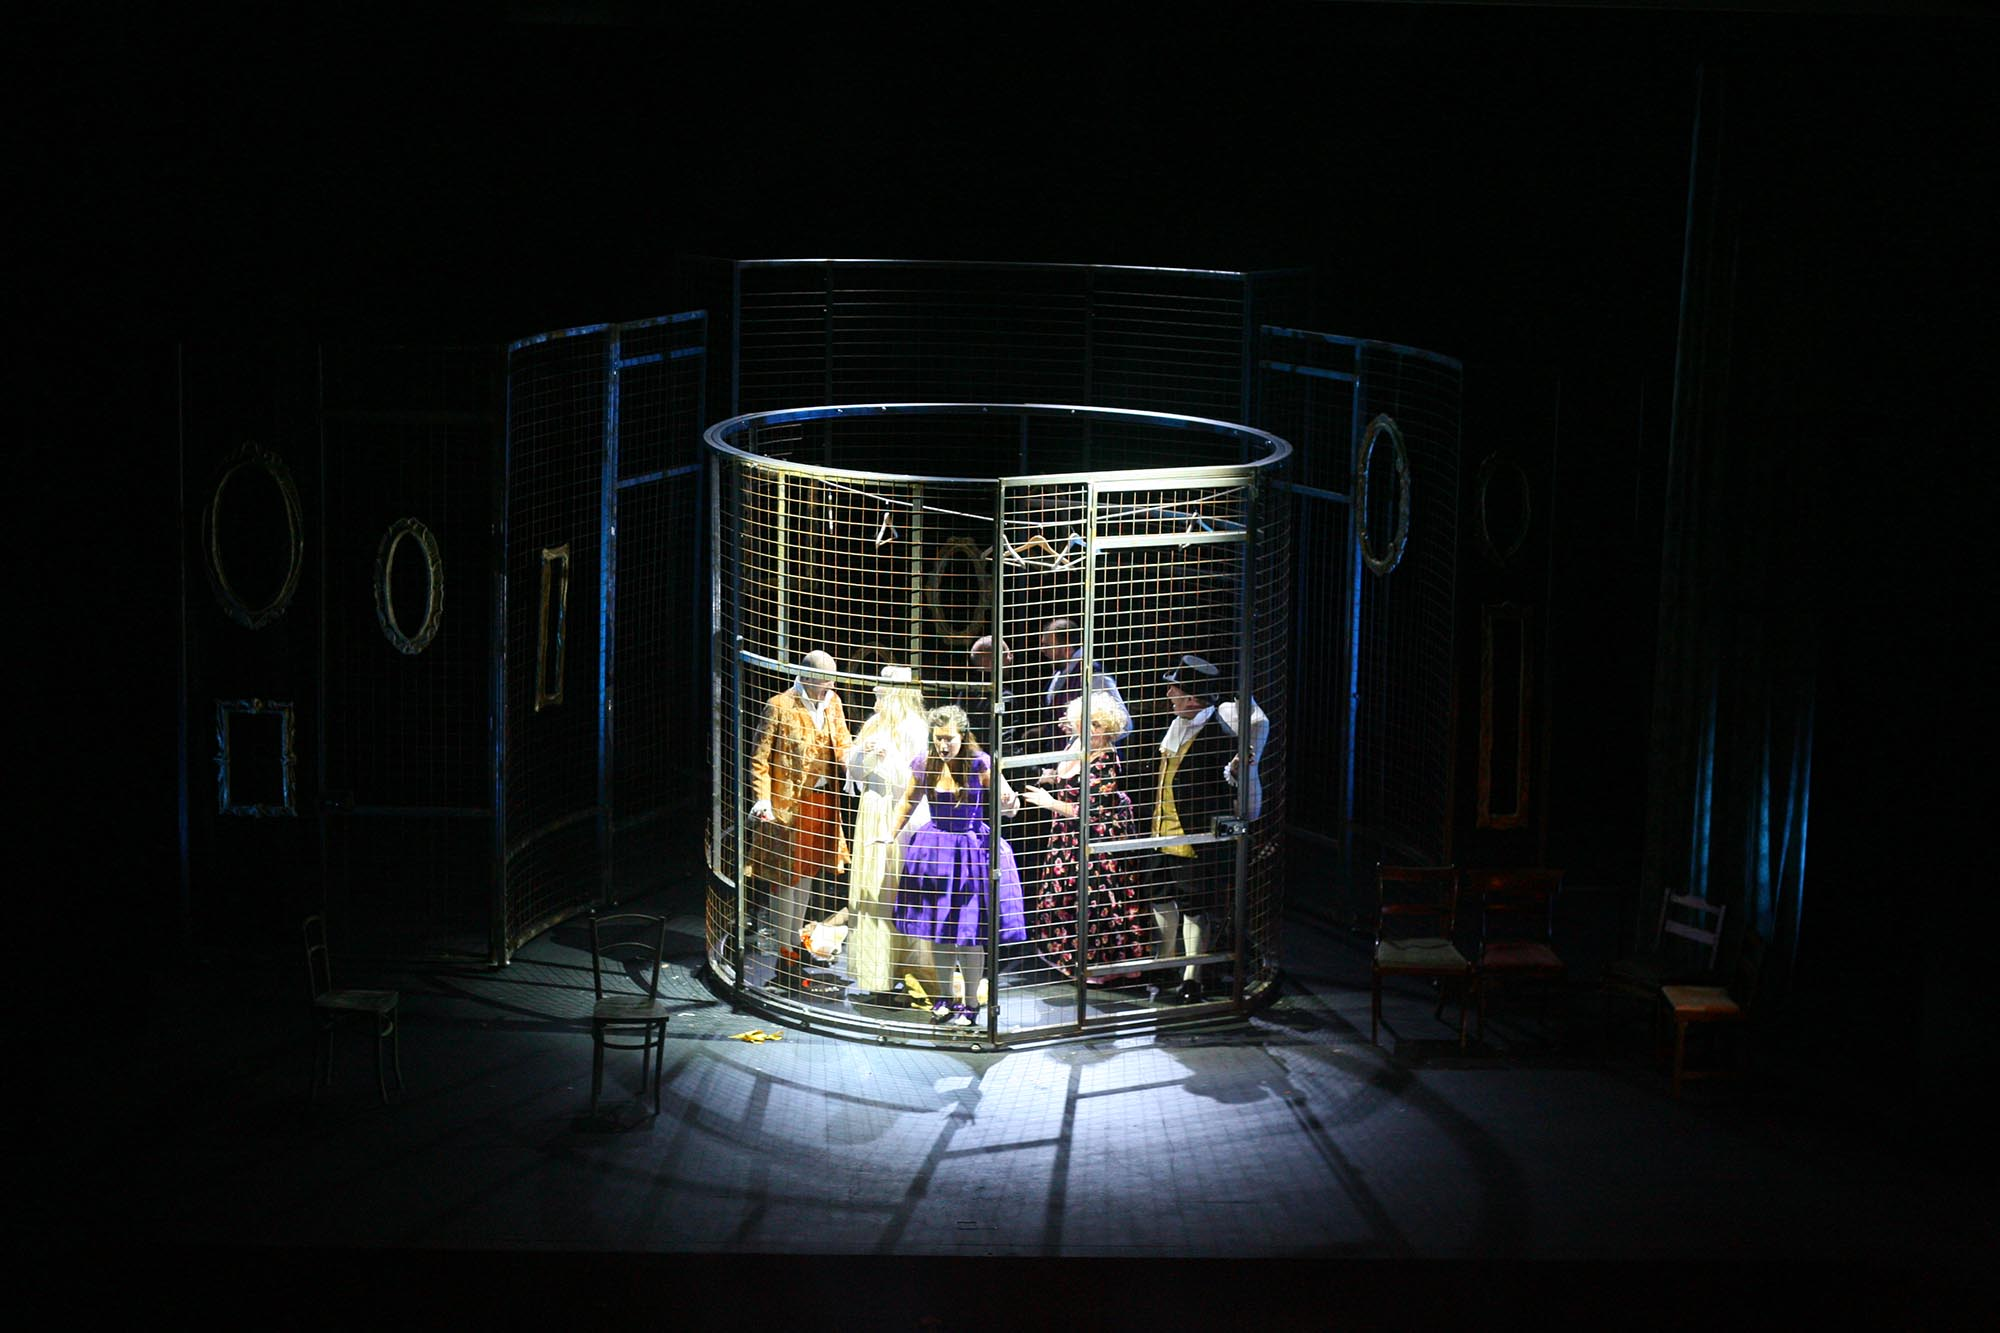 Le-nozze-di-Figaro-opera-directed-by-Jacopo-Spirei--in-London-4